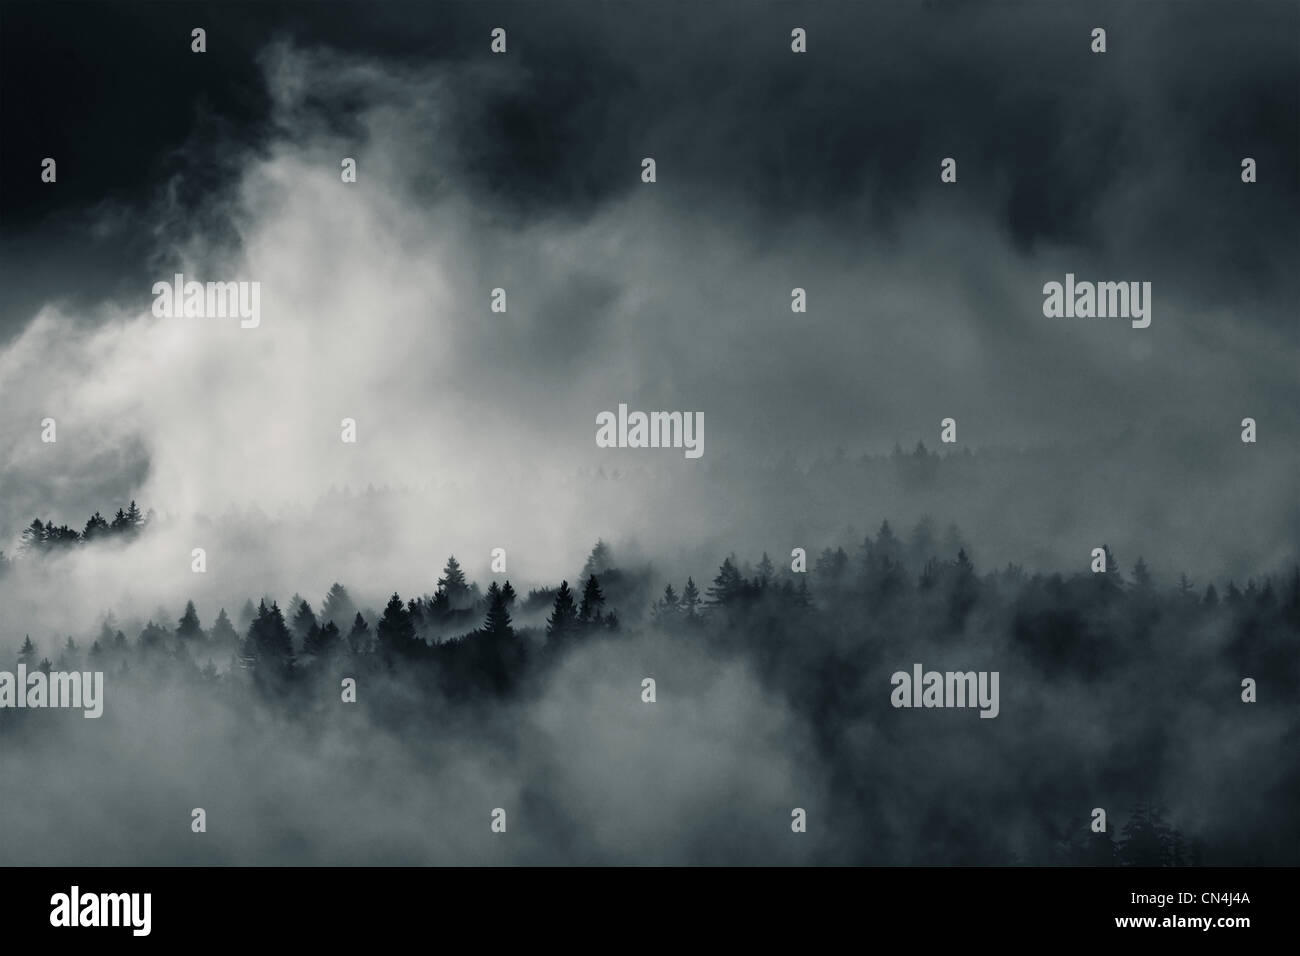 Forest in mist, Bayerisch Eisenstein, Bavaria, Germany - Stock Image